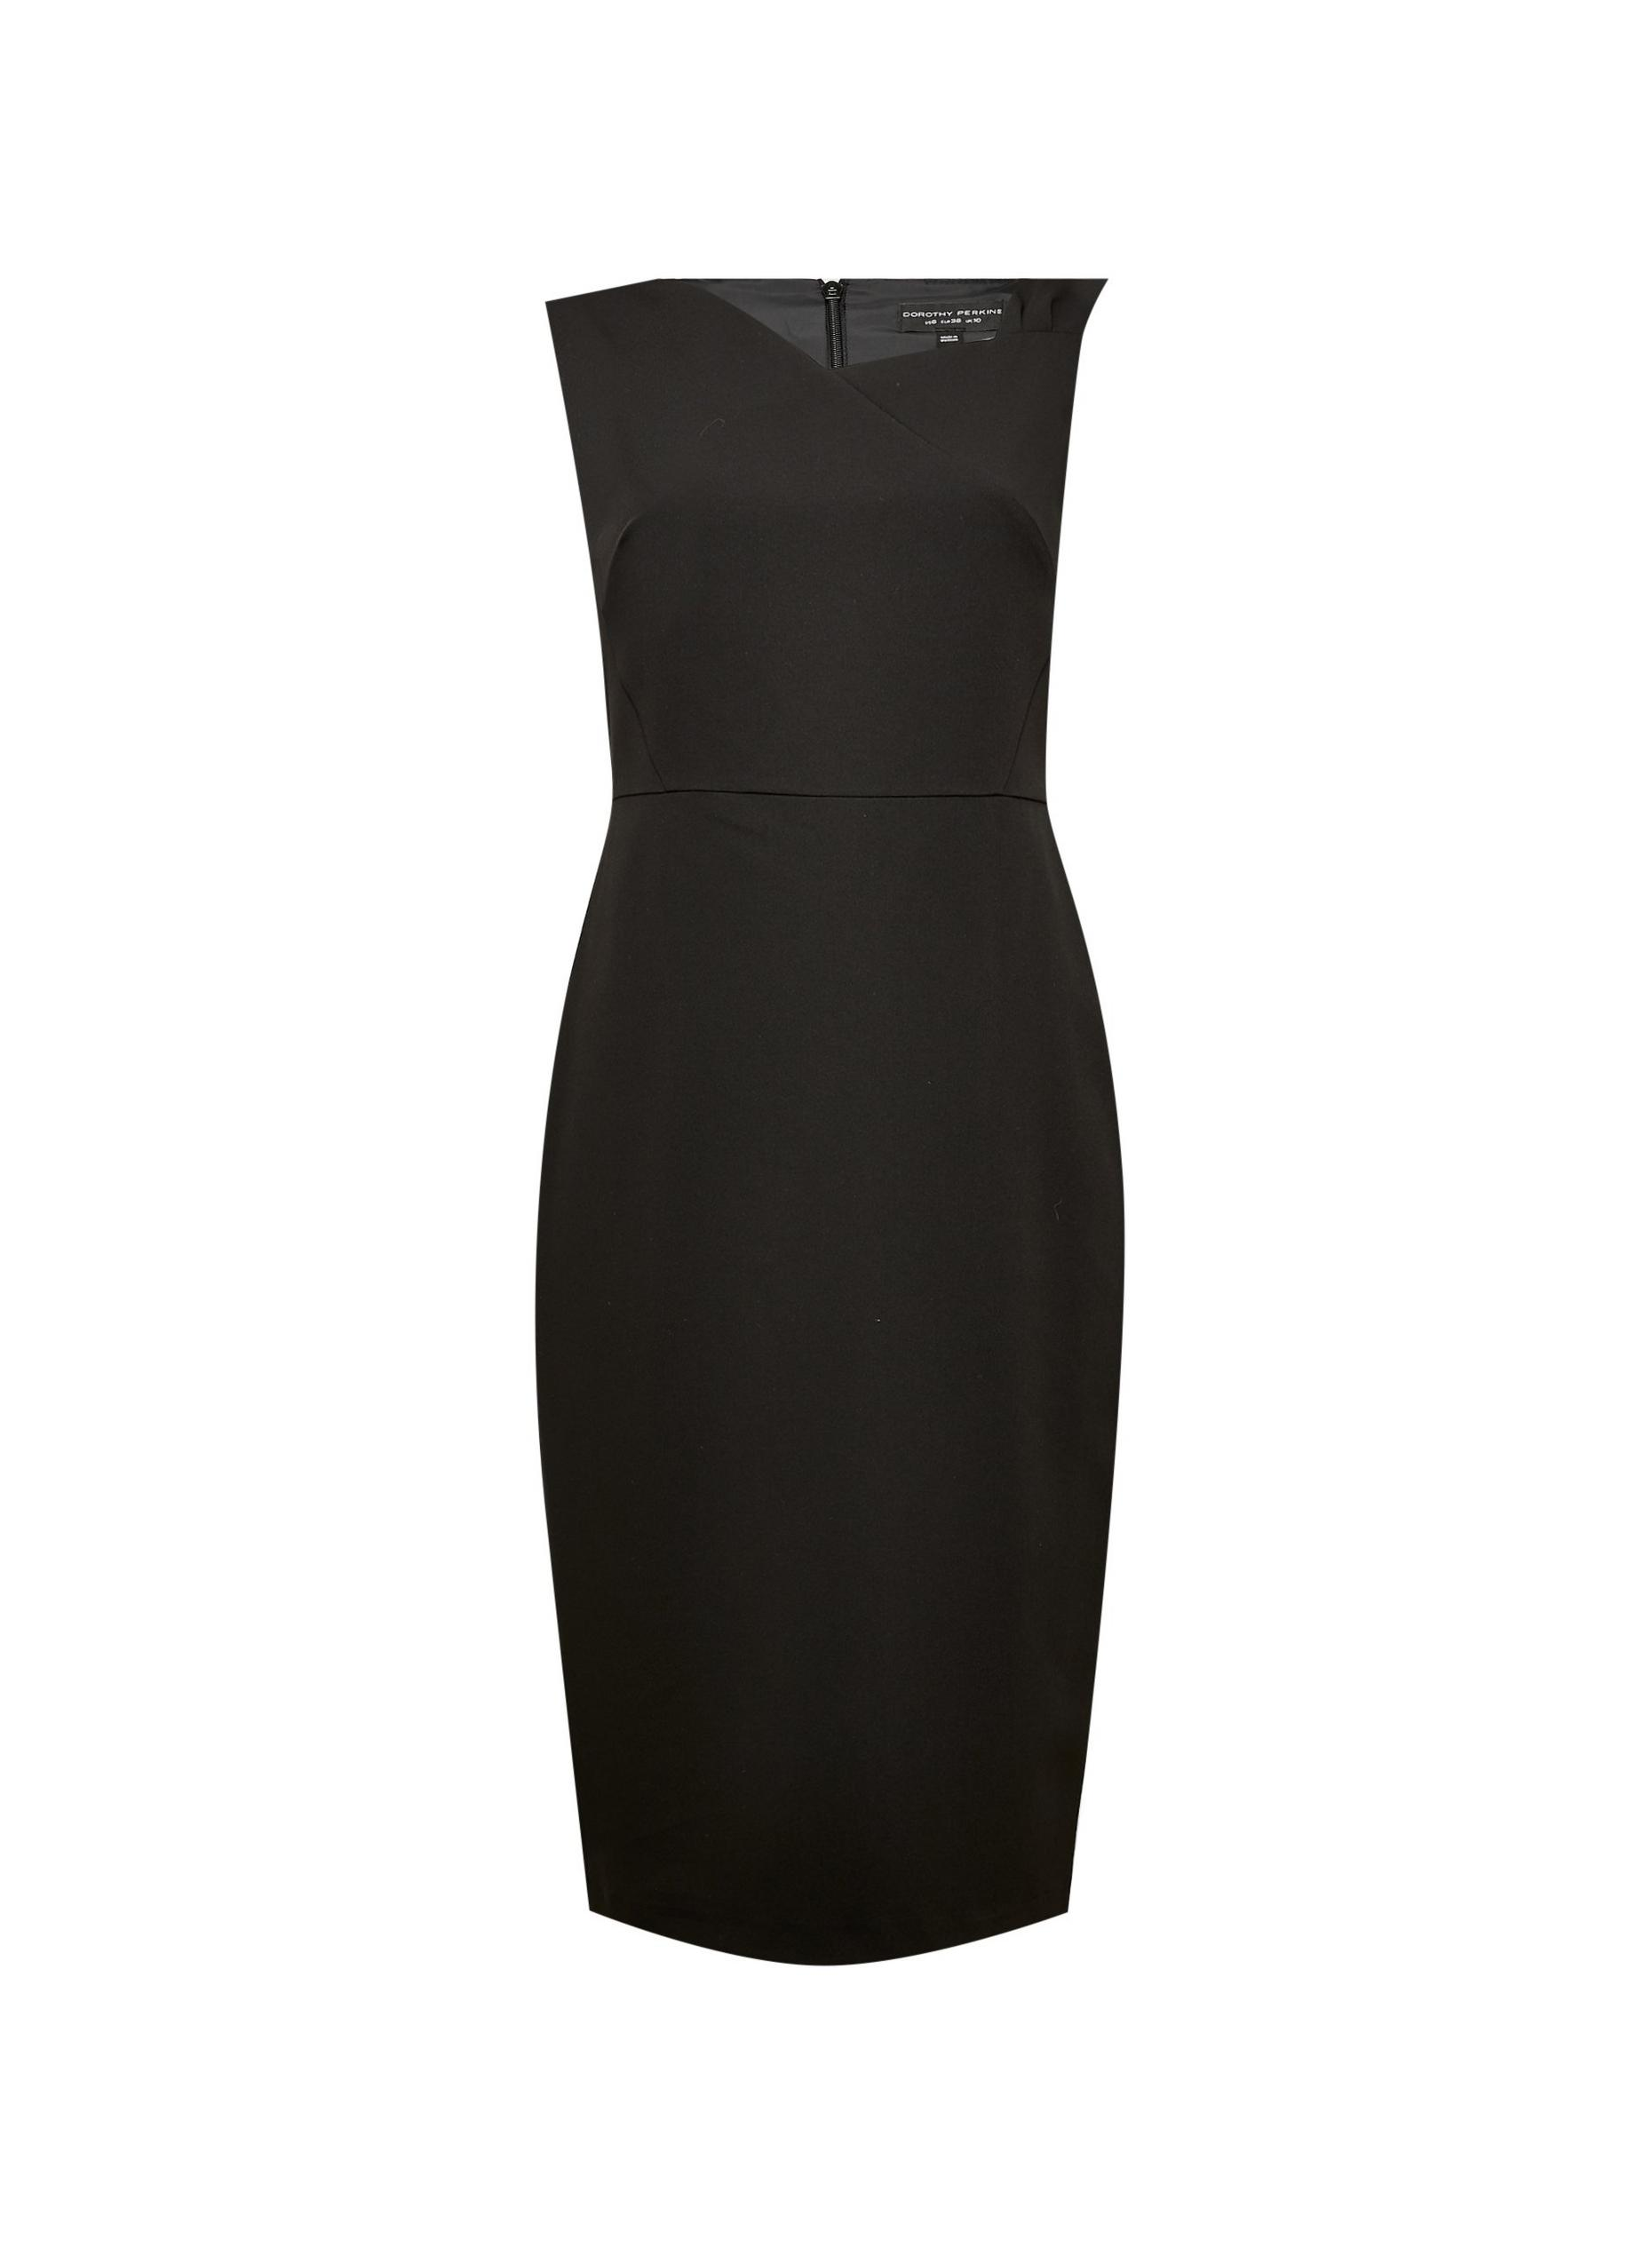 Black Asymmetric Neck Pencil Dress